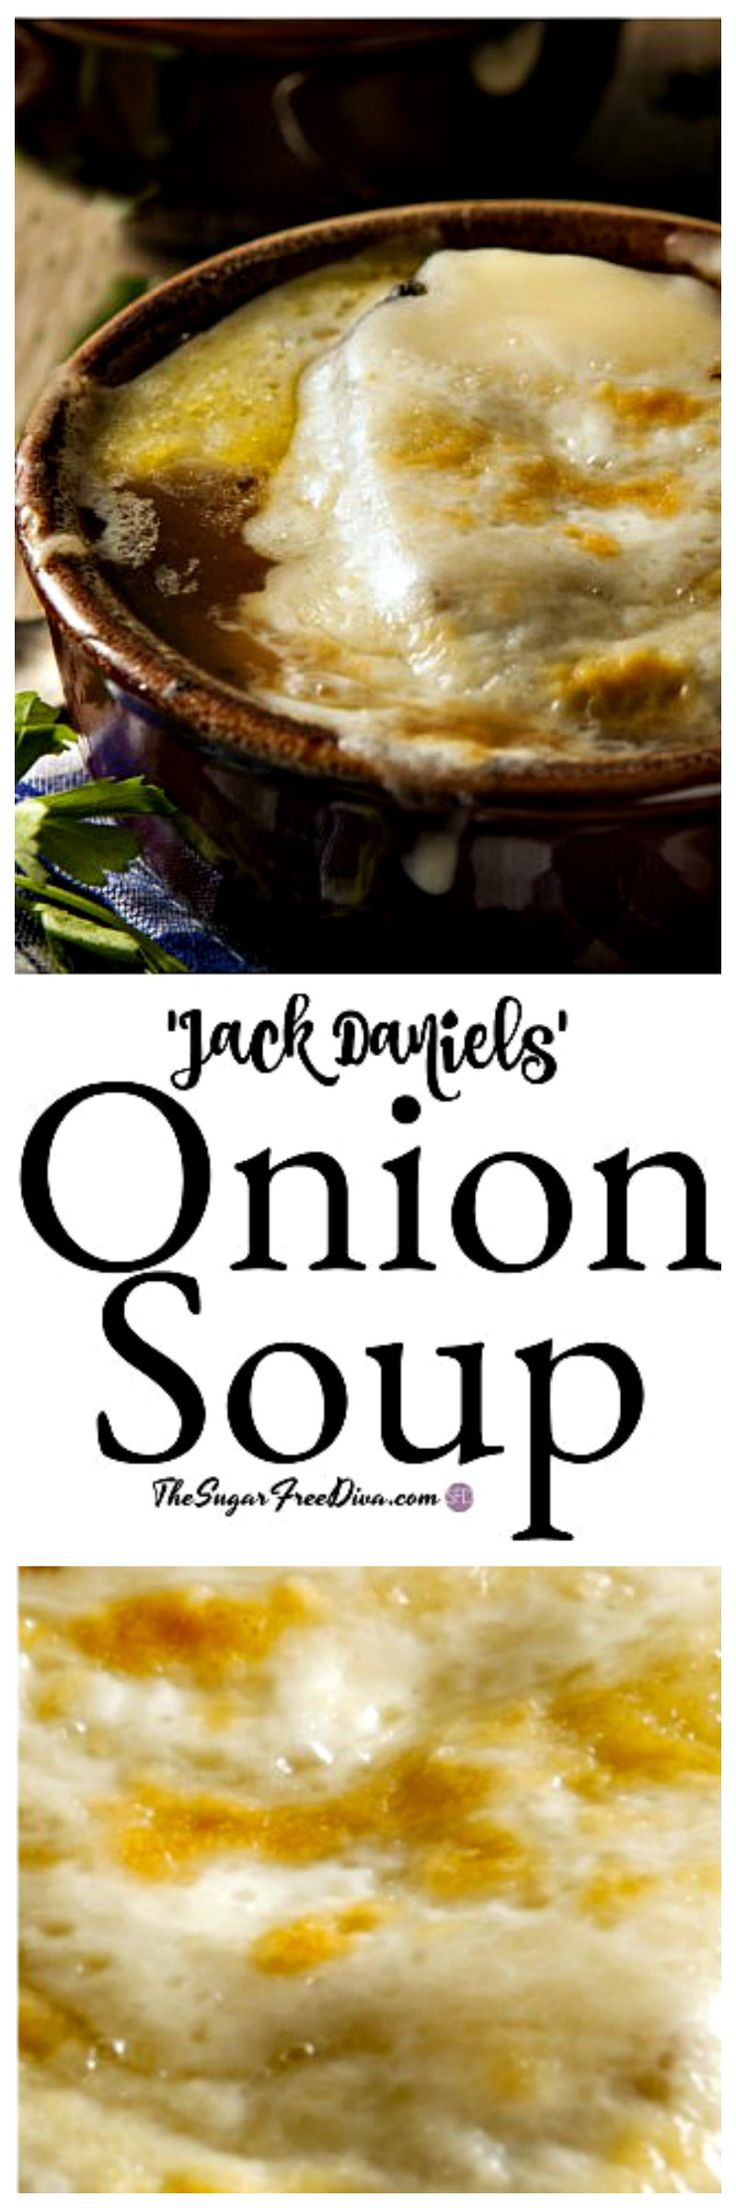 Jack Daniel's Onion Soup- that little dash of something sure takes this soup up a notch! #recipe #jackdaniels #onion #soup #lowcarb #ketp #yummy #best  #yummy #popular #trending #pinterest